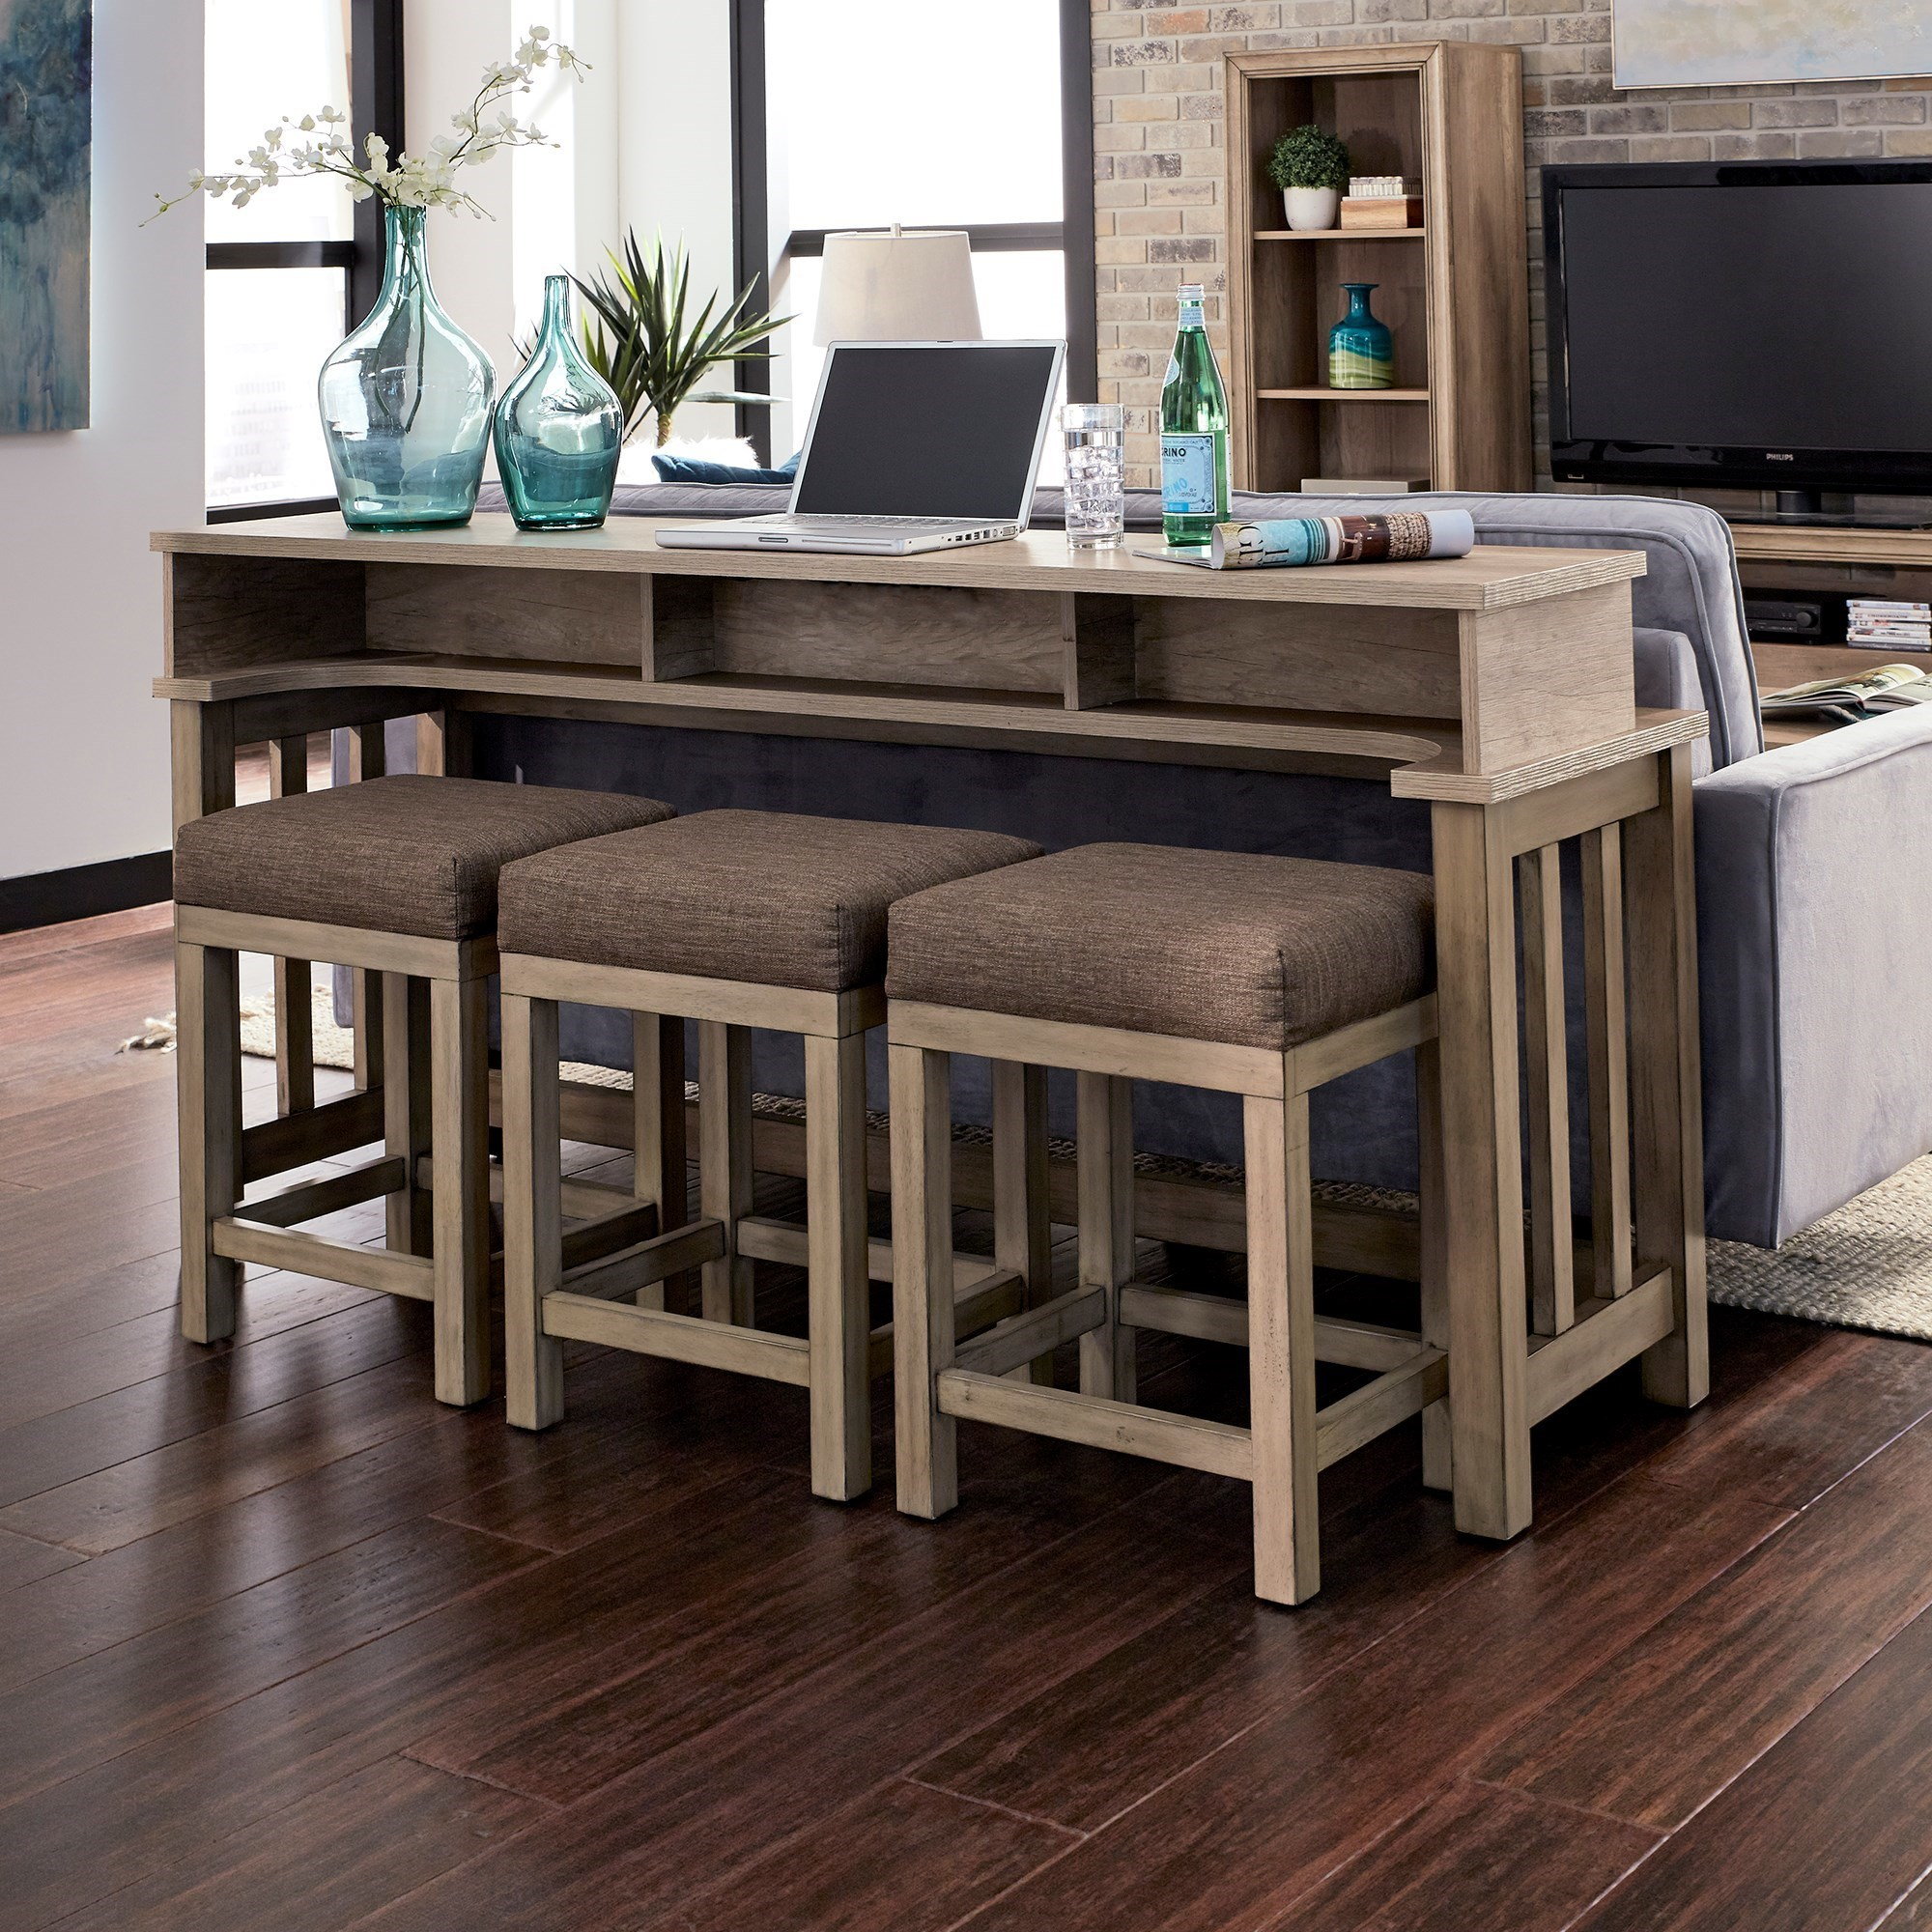 Sun Valley 4-Piece Console Table Set  by Freedom Furniture at Ruby Gordon Home